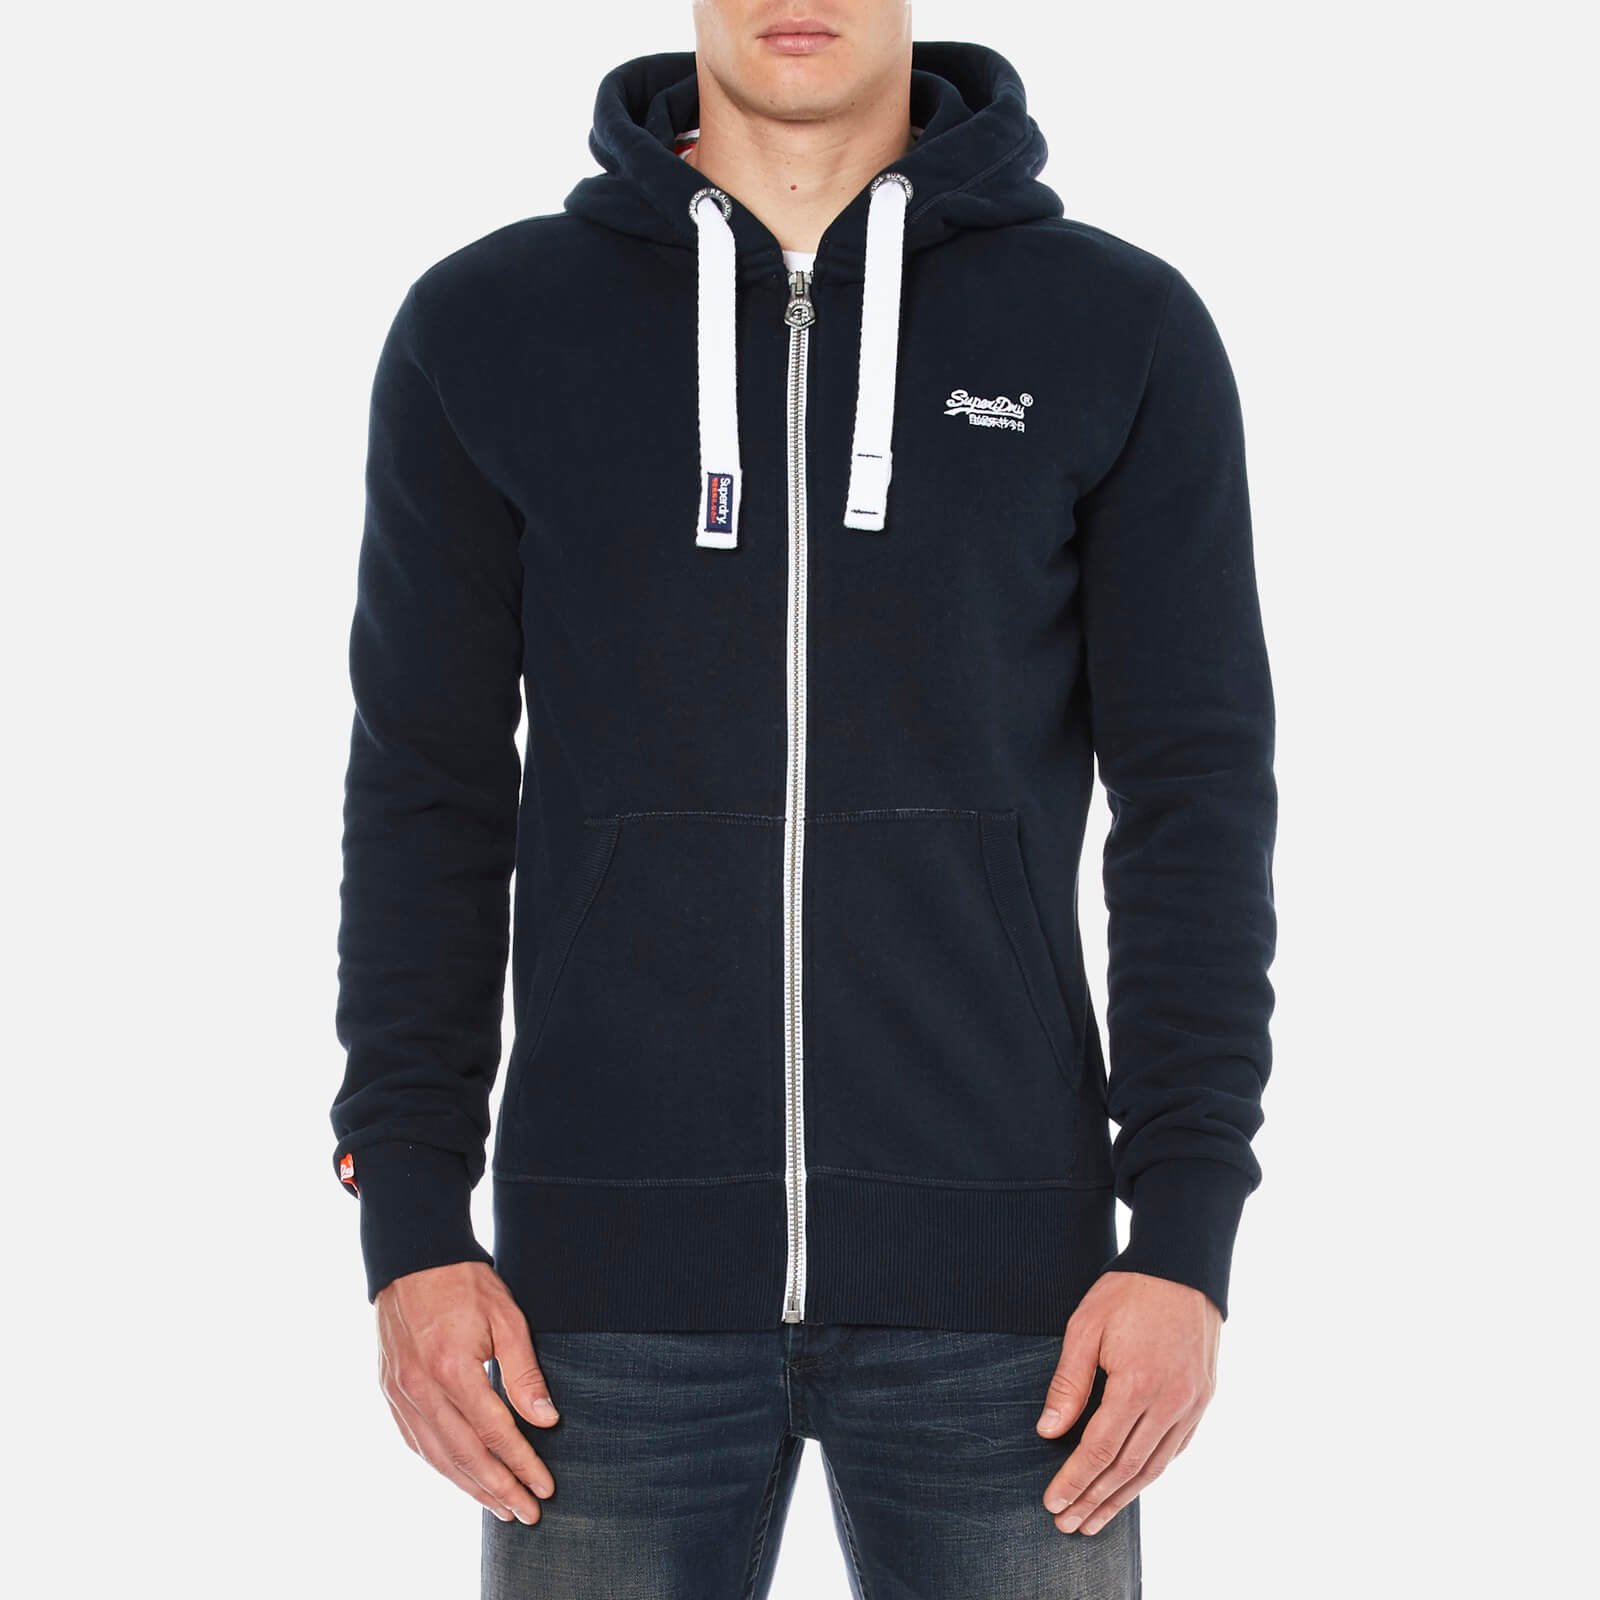 89ab0c46ec68 Superdry Men's Orange Label Zip Hoody - Eclipse Navy Mens Clothing |  TheHut.com